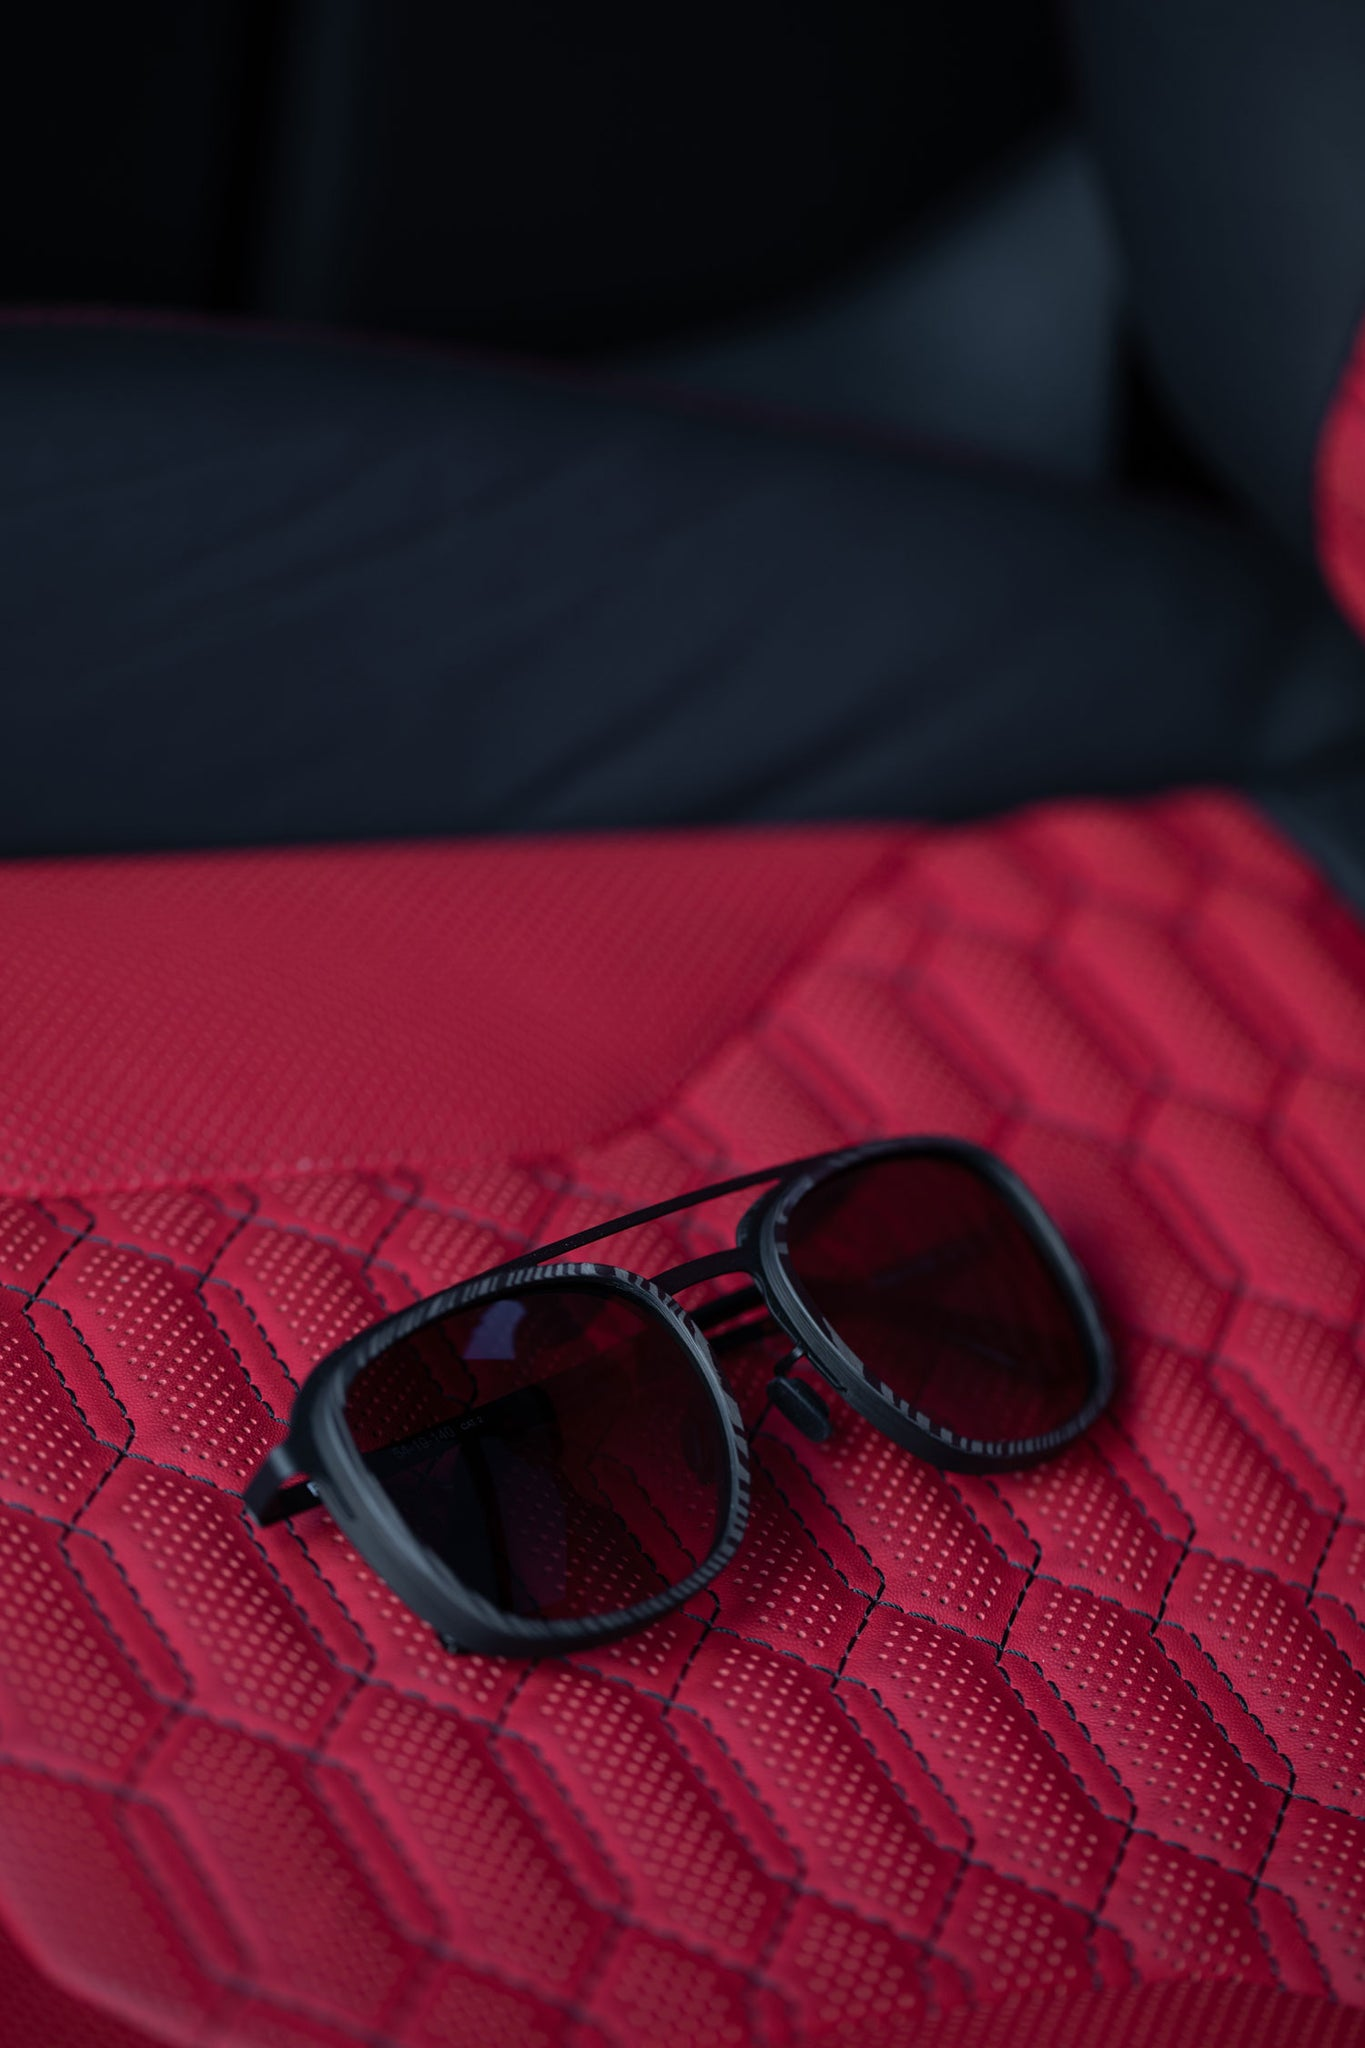 Roveri Eyewear RV018B aviators carbon fiber sunglasses on Lamborghini Urus leather seat.